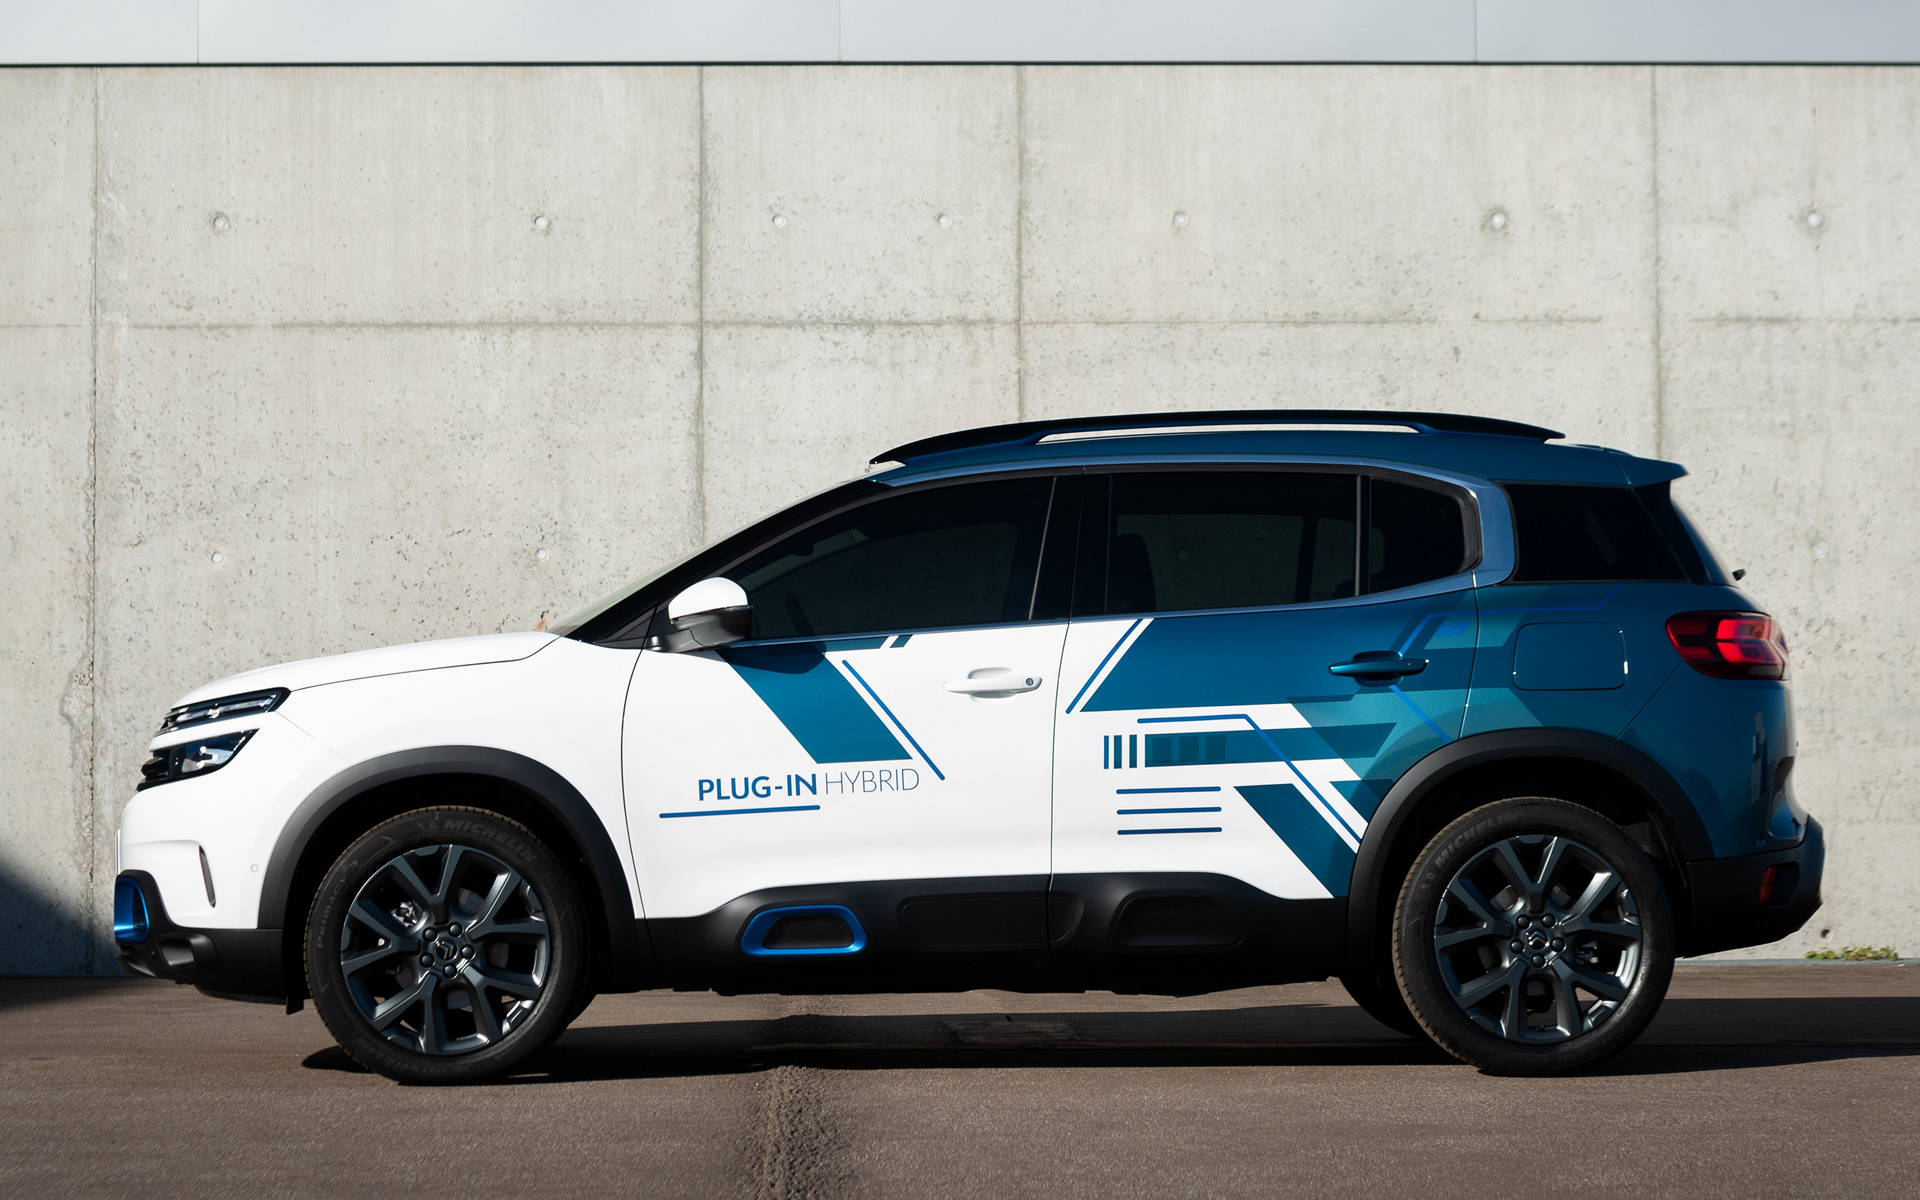 Ford Suv Hybrid >> 2018 Citroen C5 Aircross SUV Hybrid Concept - Wallpapers ...